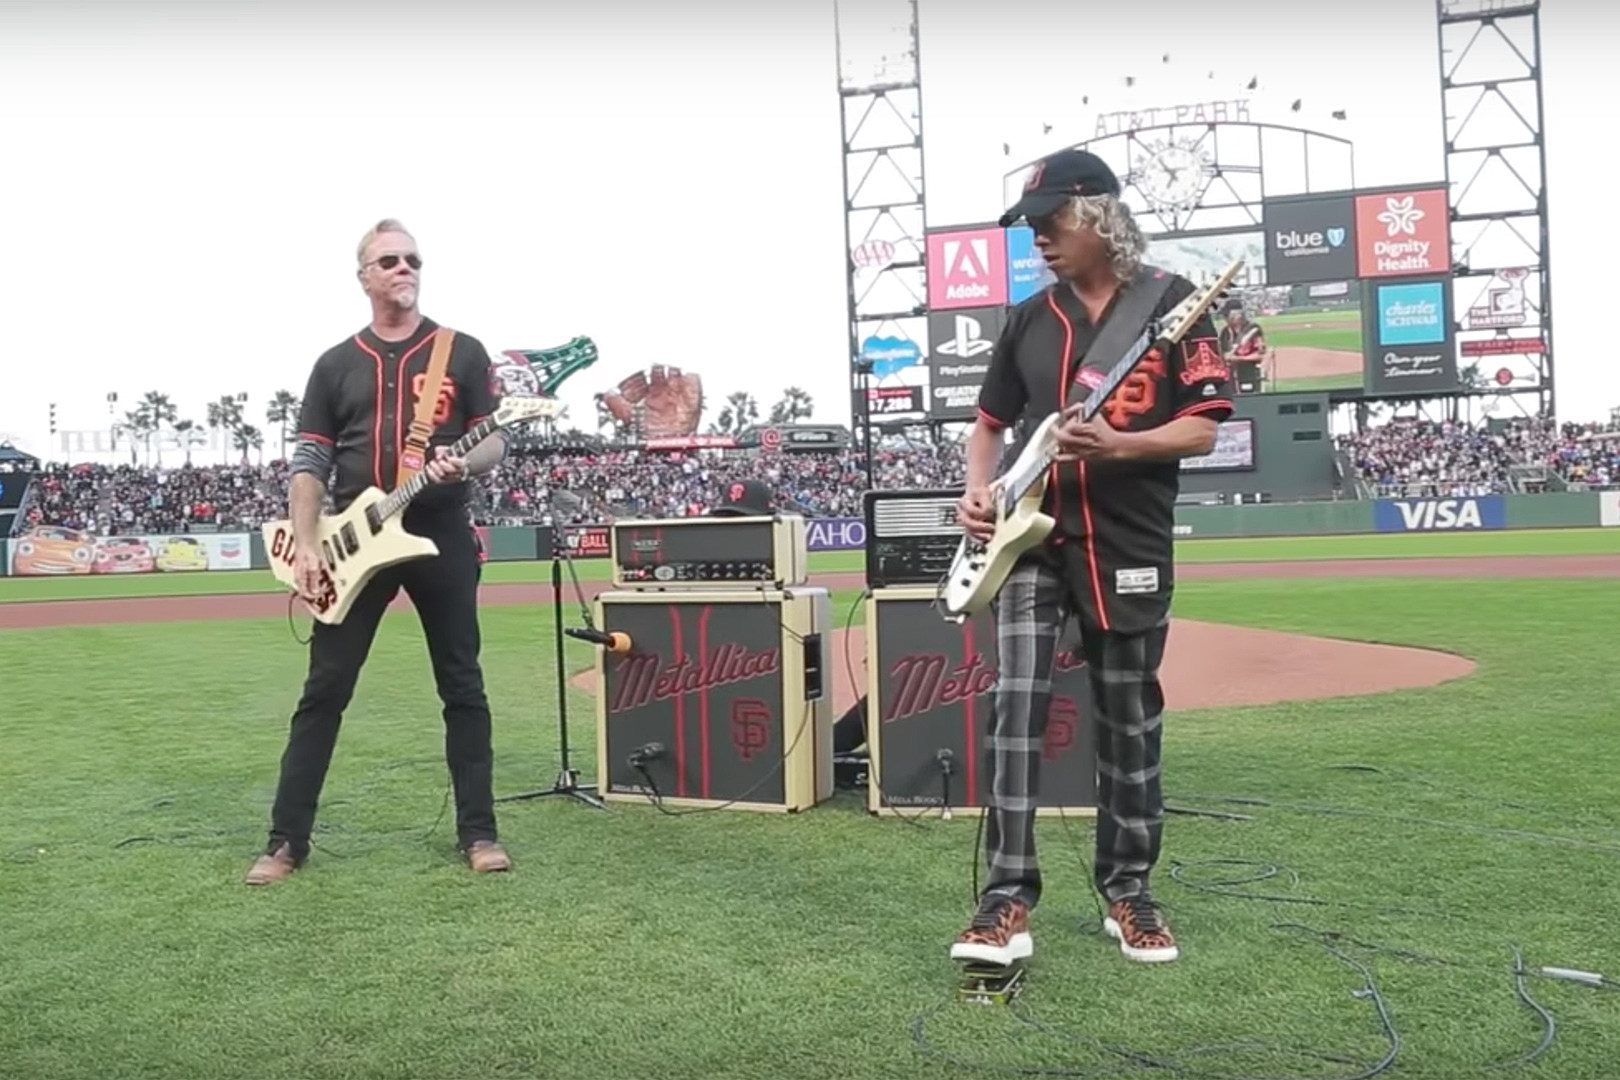 Watch Metallica Perform National Anthem at San Francisco Giants